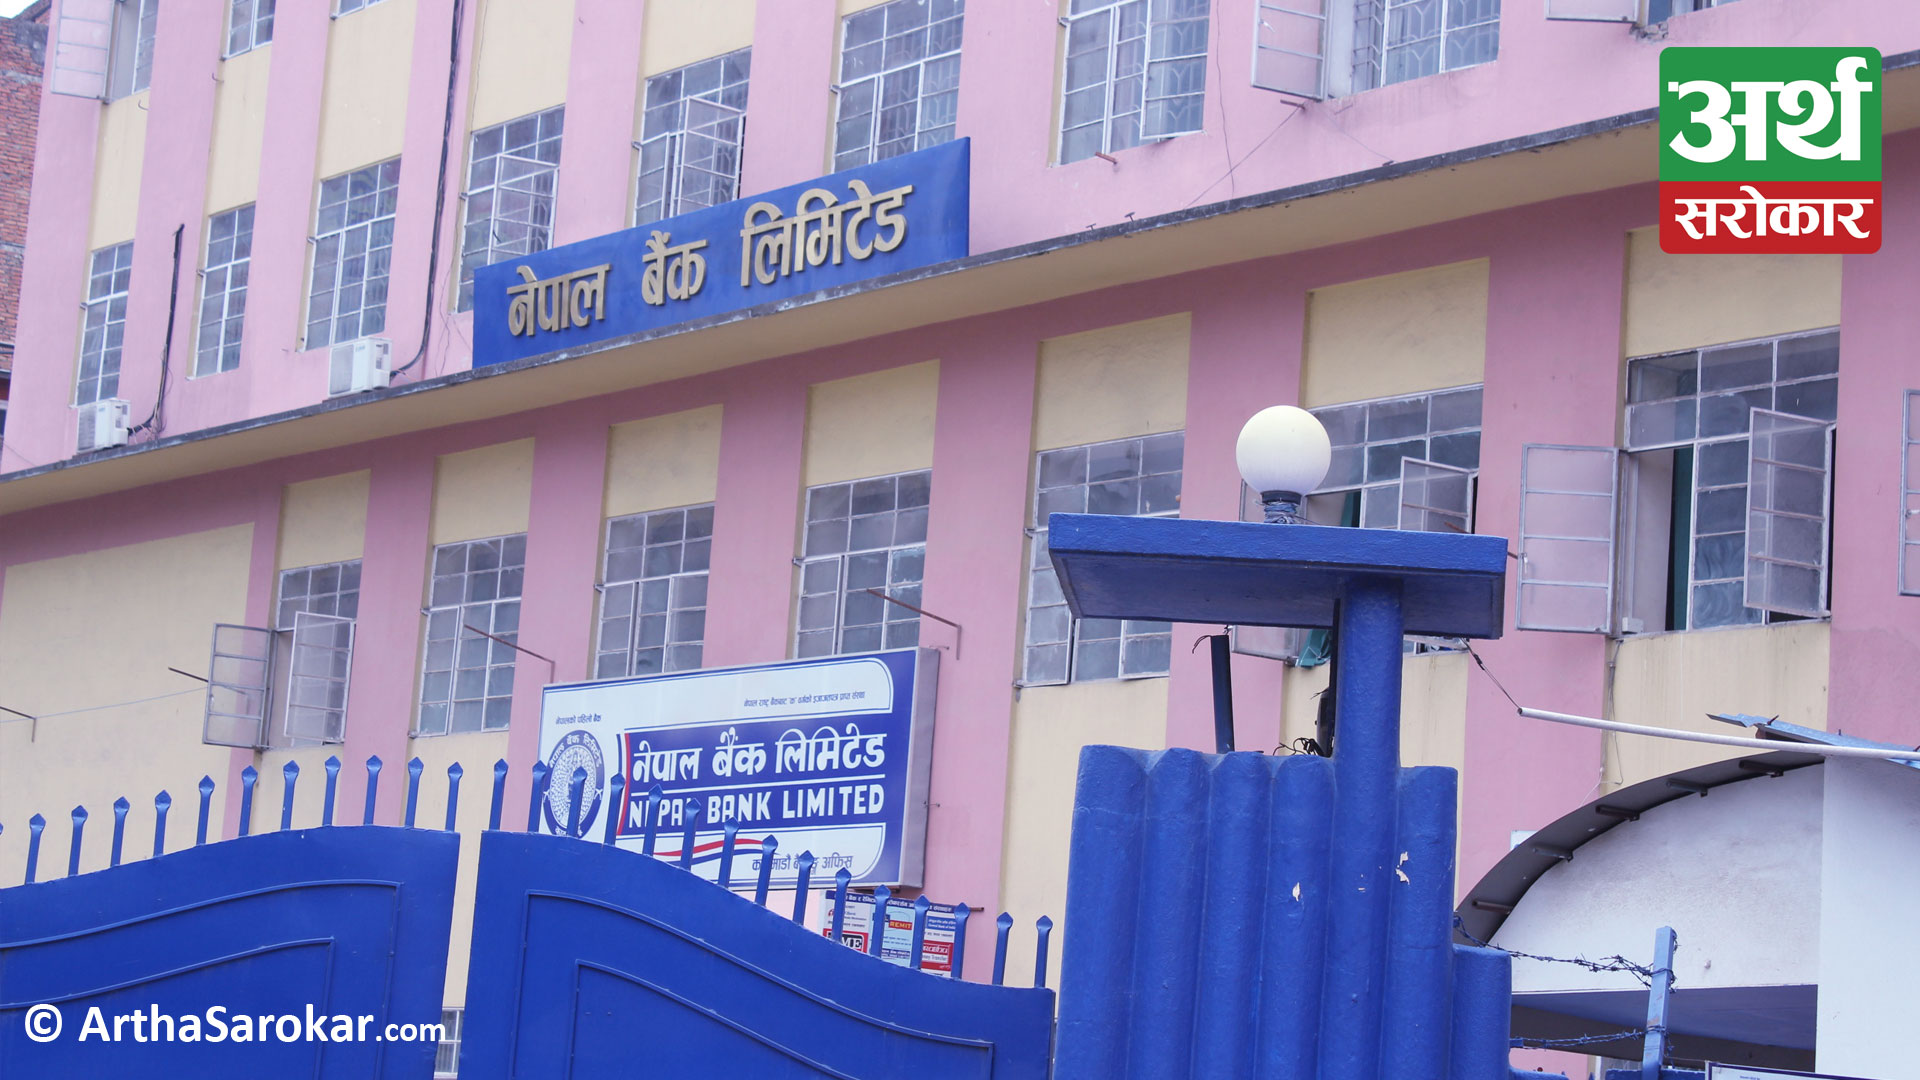 Nepal Bank Limited's net profit declined to Rs 13.85 billion in the second quarter